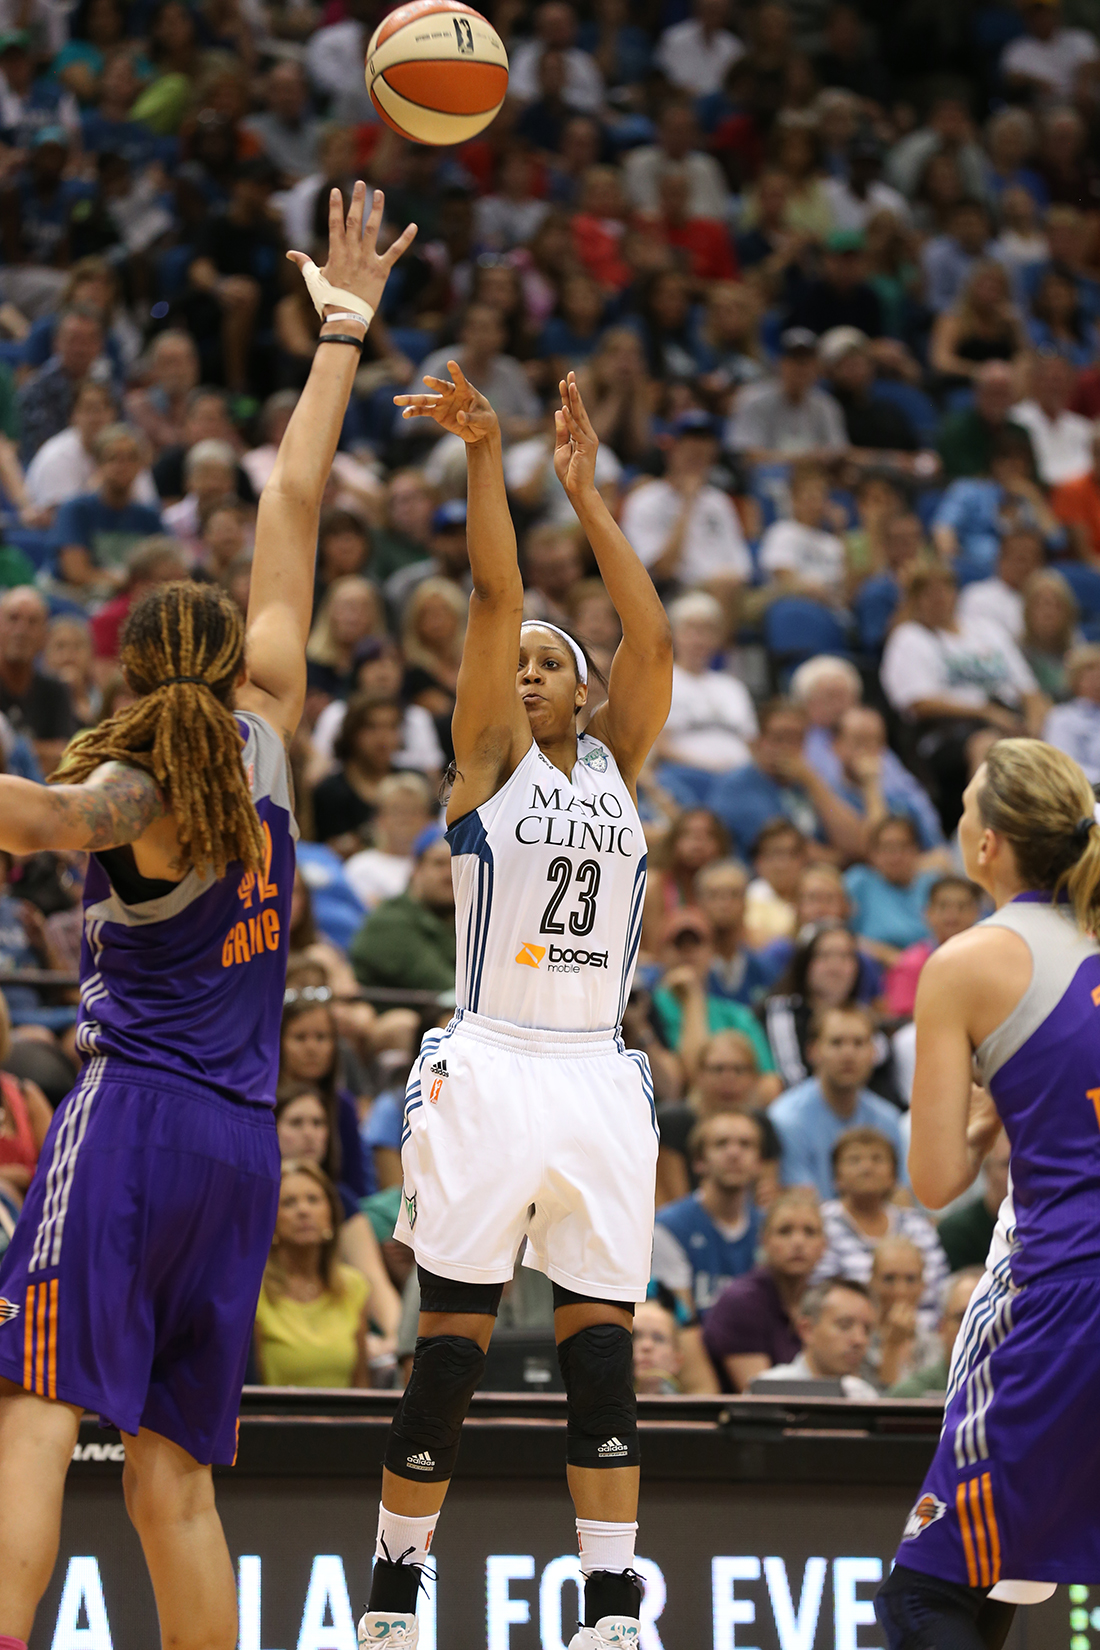 Maya Moore Copyright 2014 NBAE (Photo by Jordan Johnson/NBAE via Getty Images)